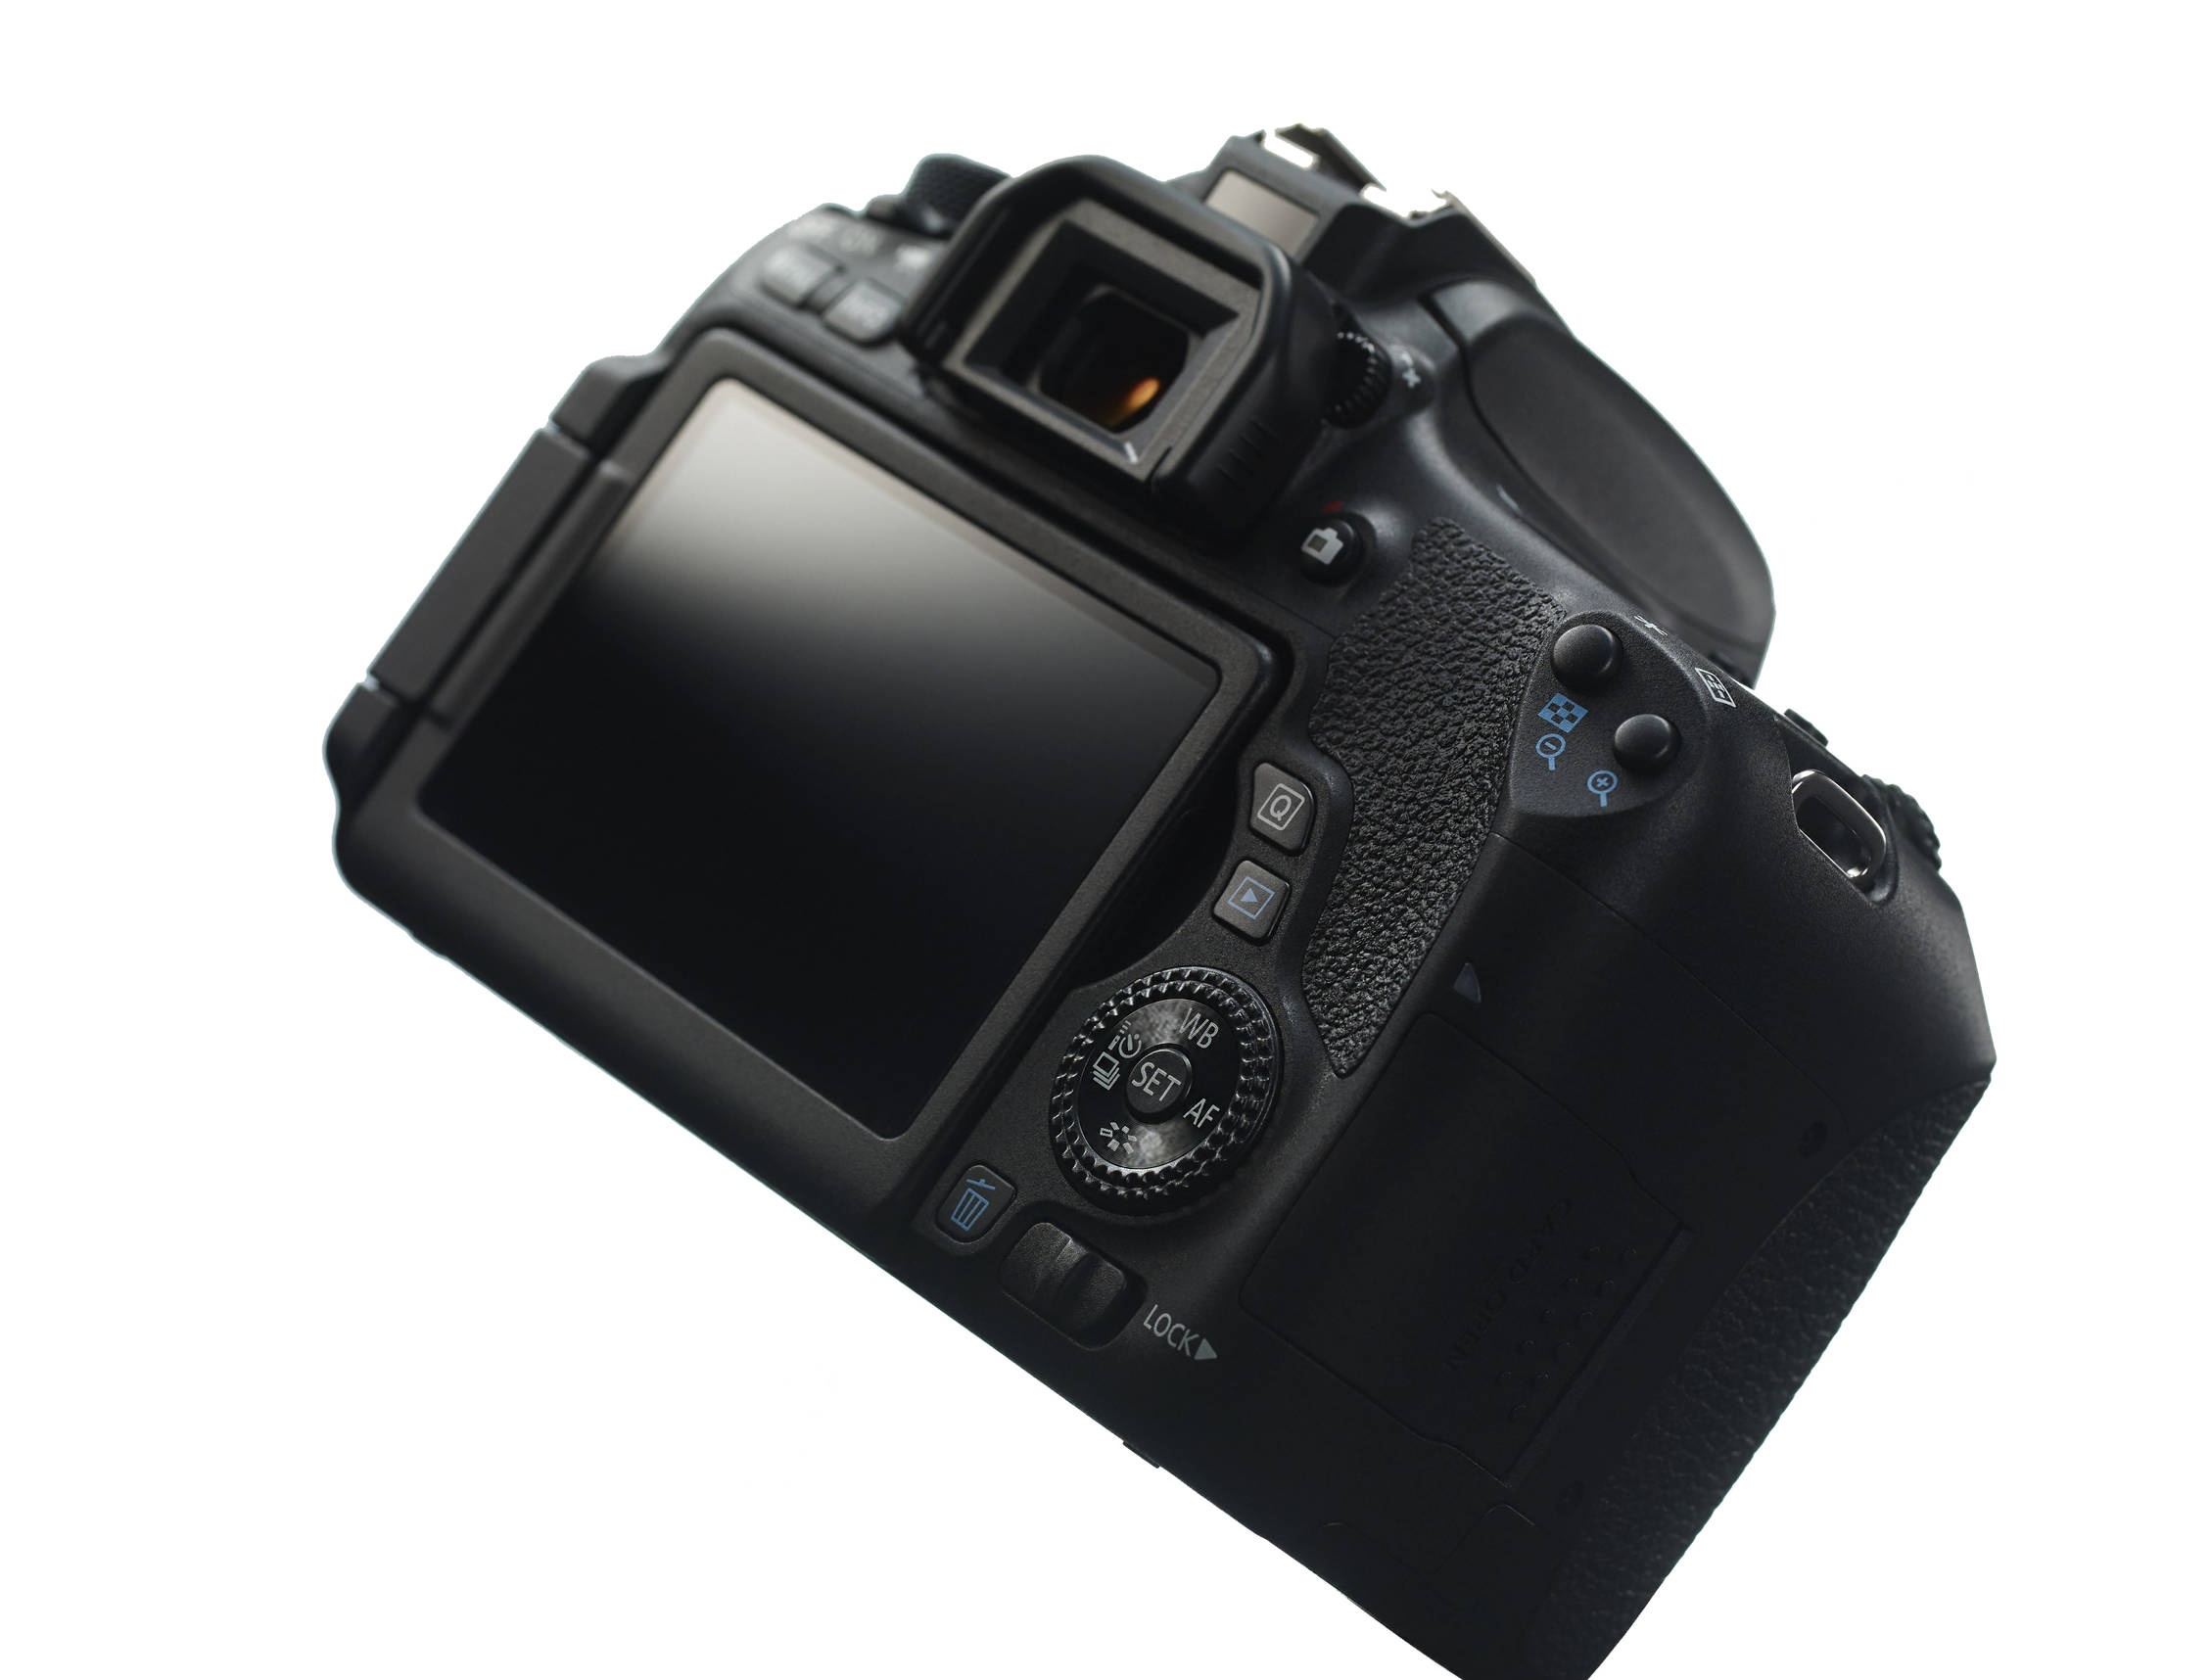 Canon-EOS-760D-Gear-NewRelease-Announced-On-Orms-Connect-Photographic-Blog